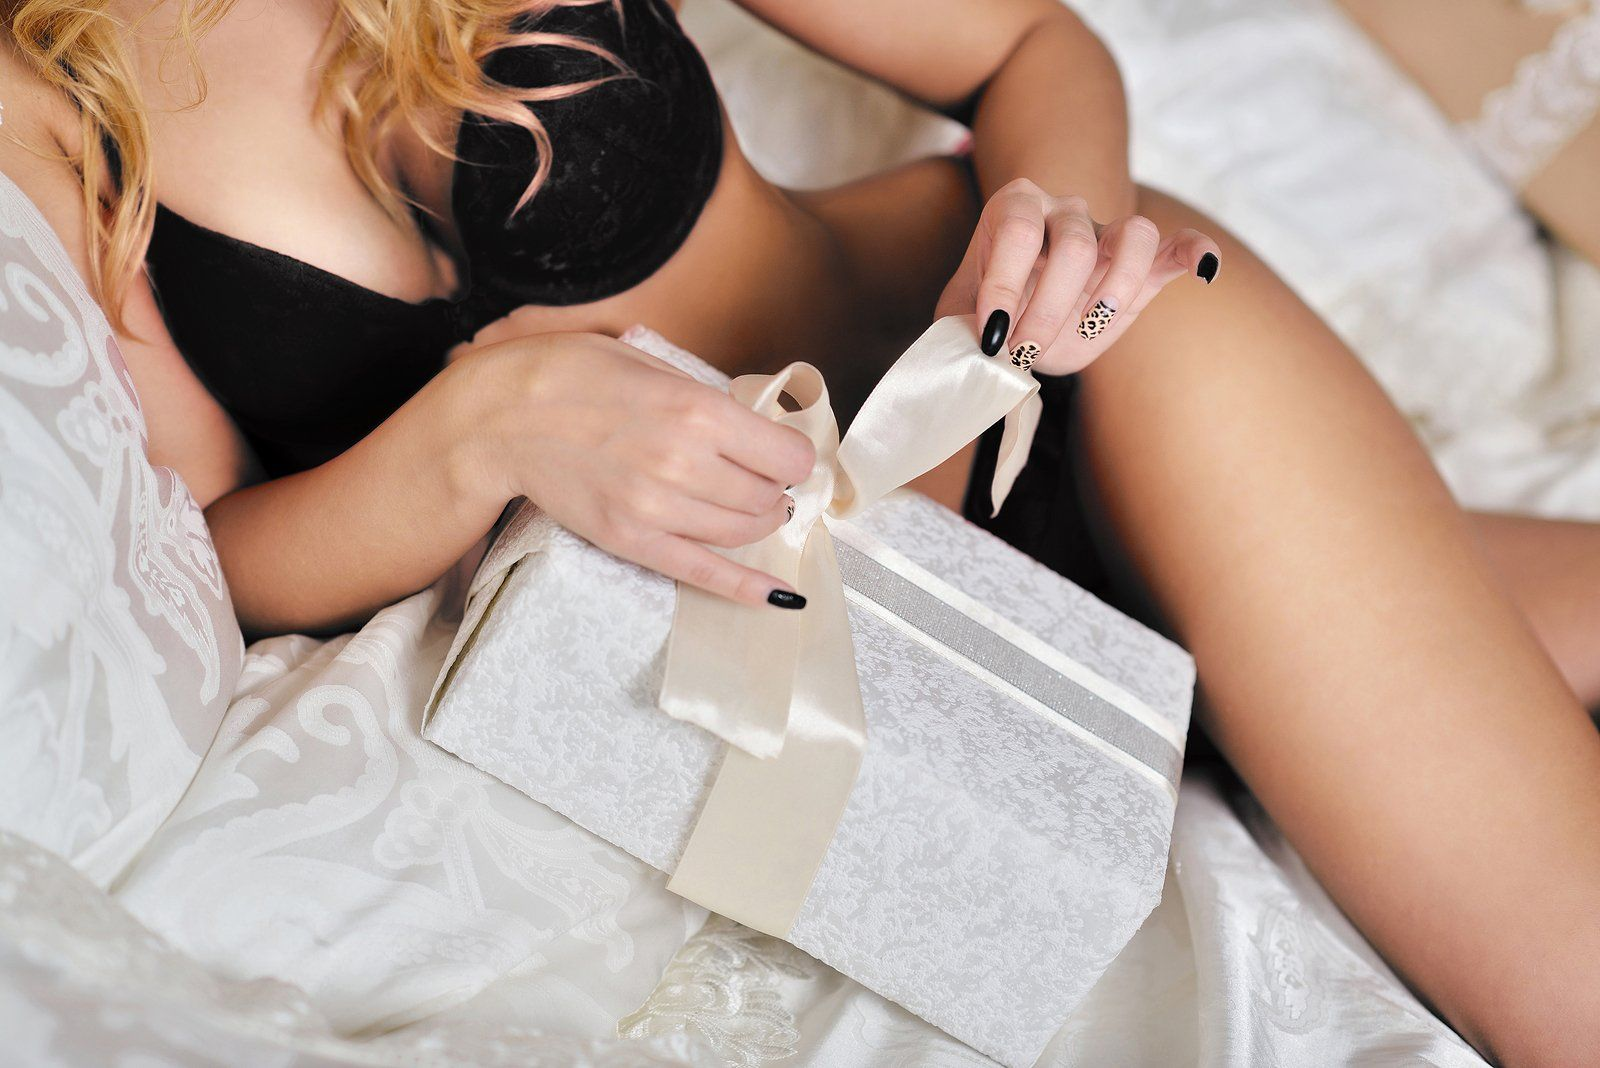 Sexy Date Night Ideas: Sex Toy Kits Provide a 'Date in a Box' for Couples